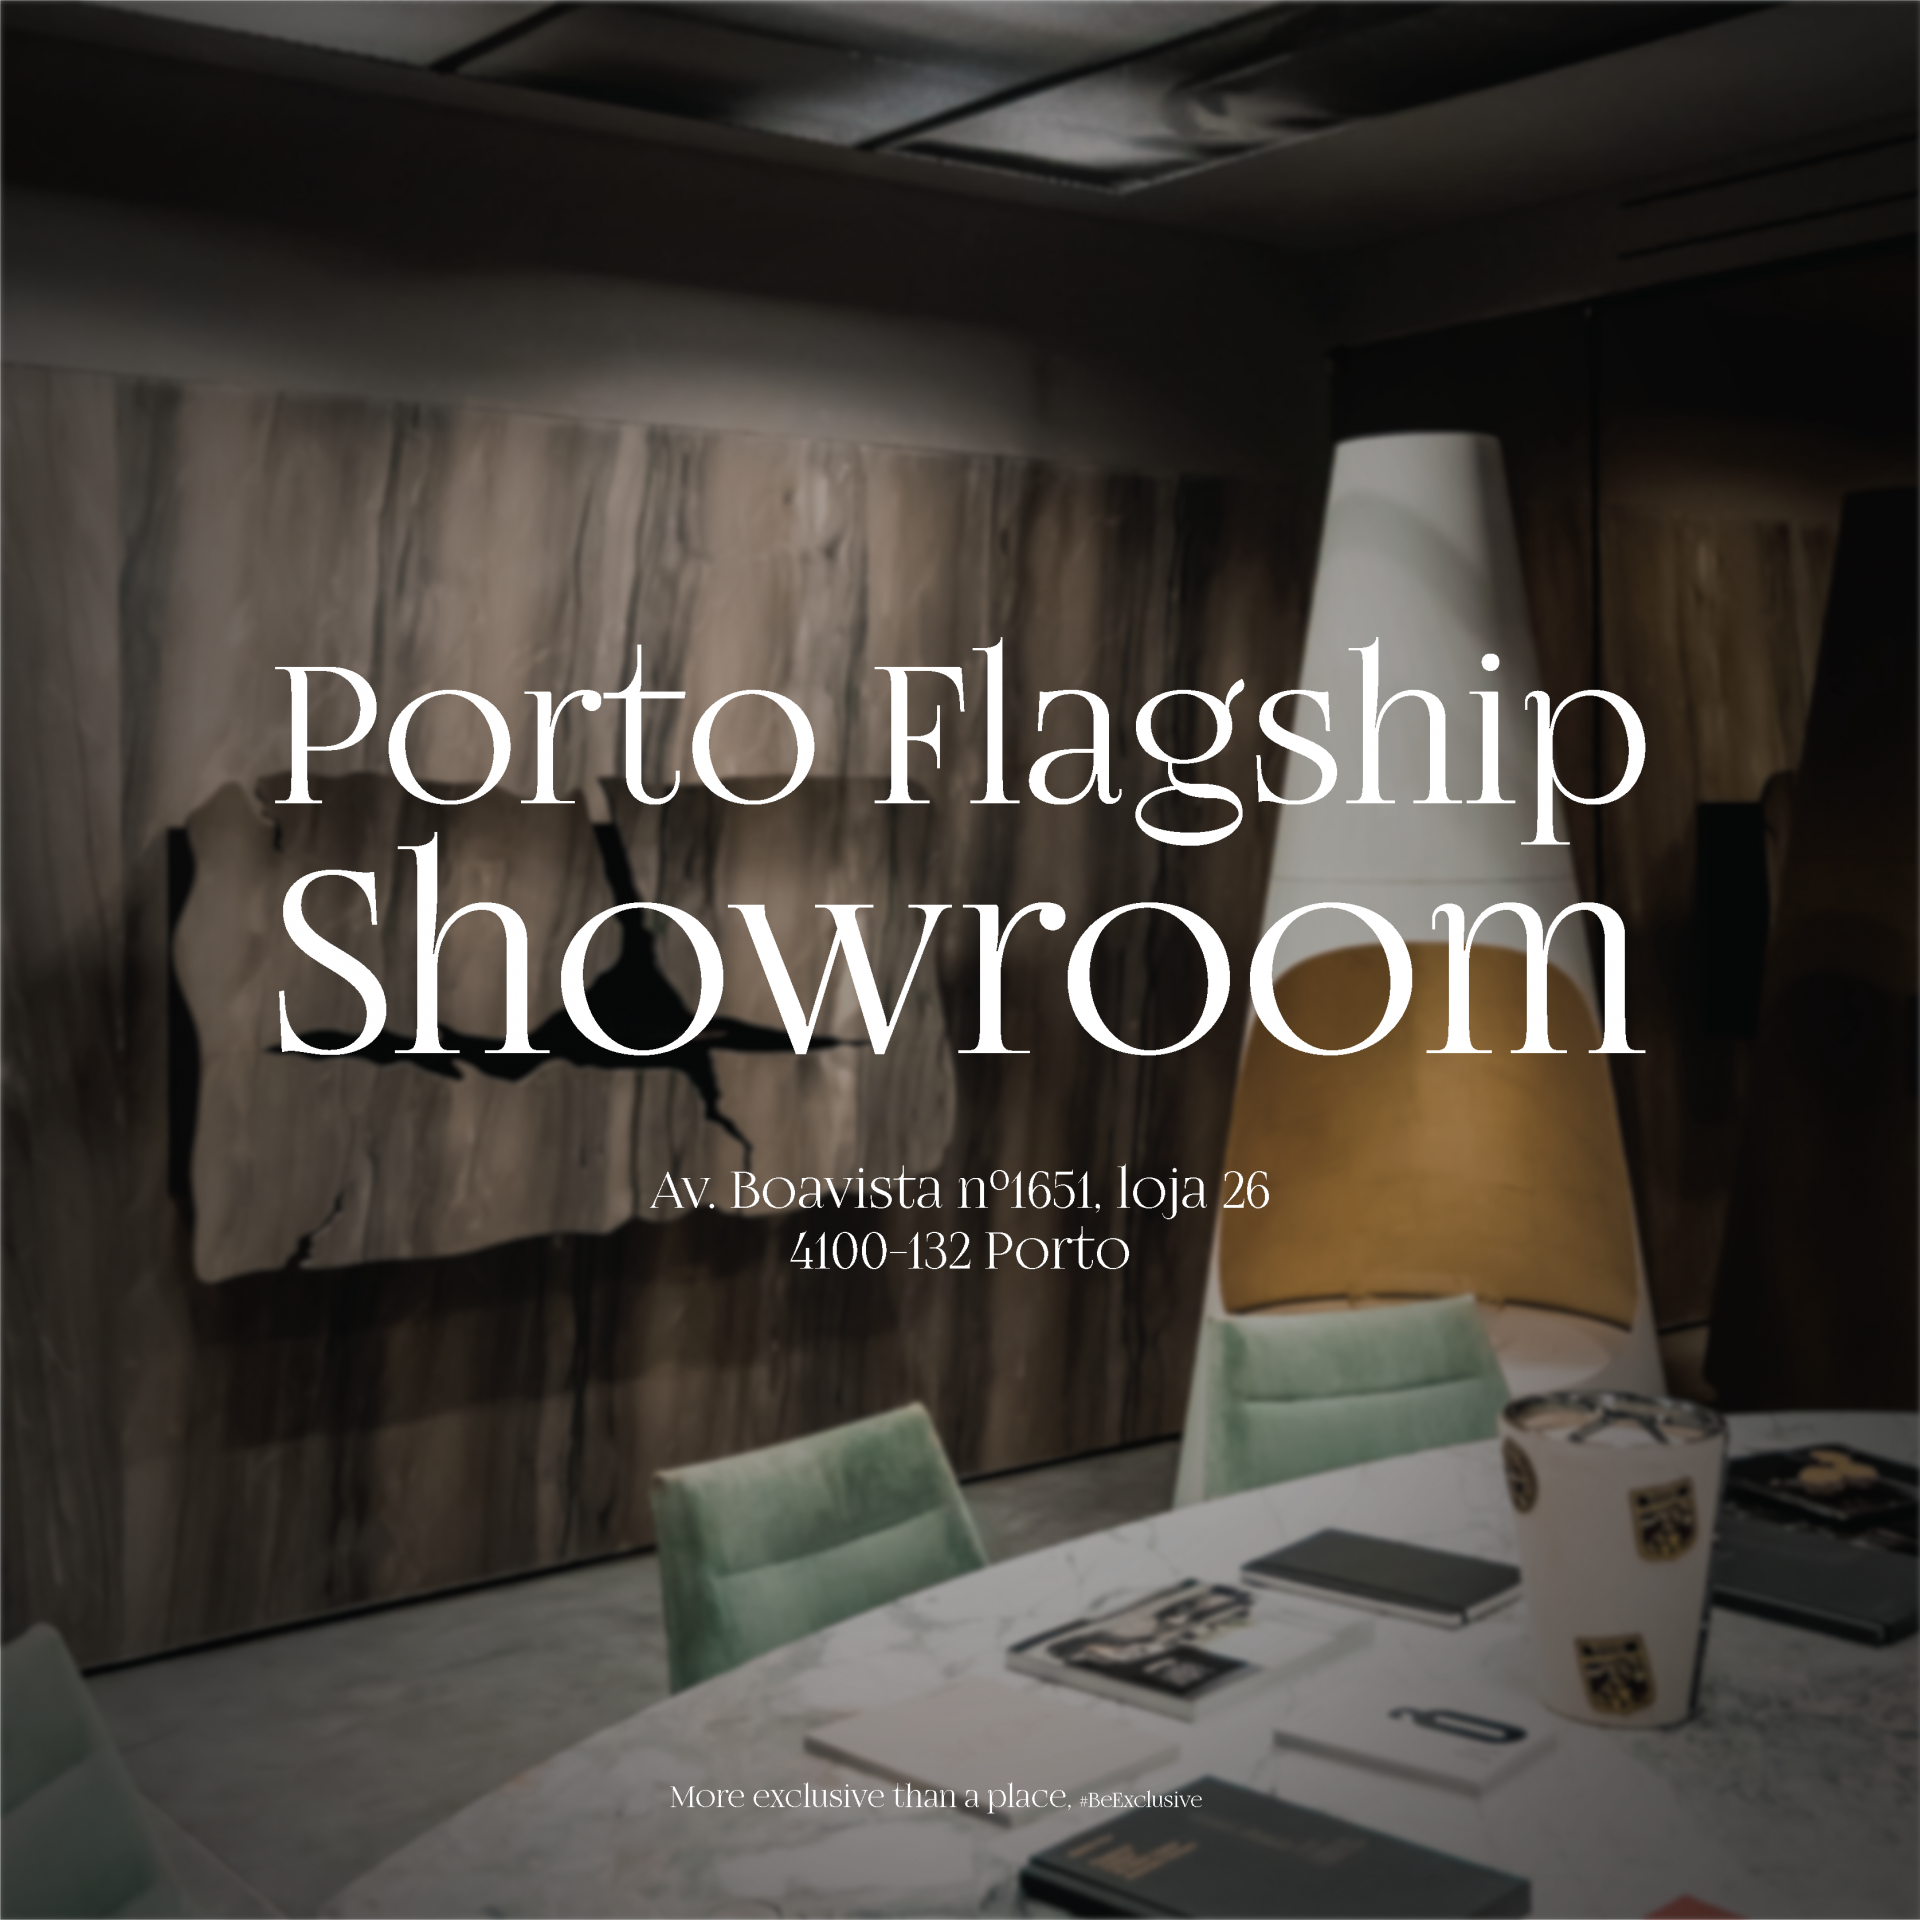 PORTO FLAGSHIP SHOWROOM